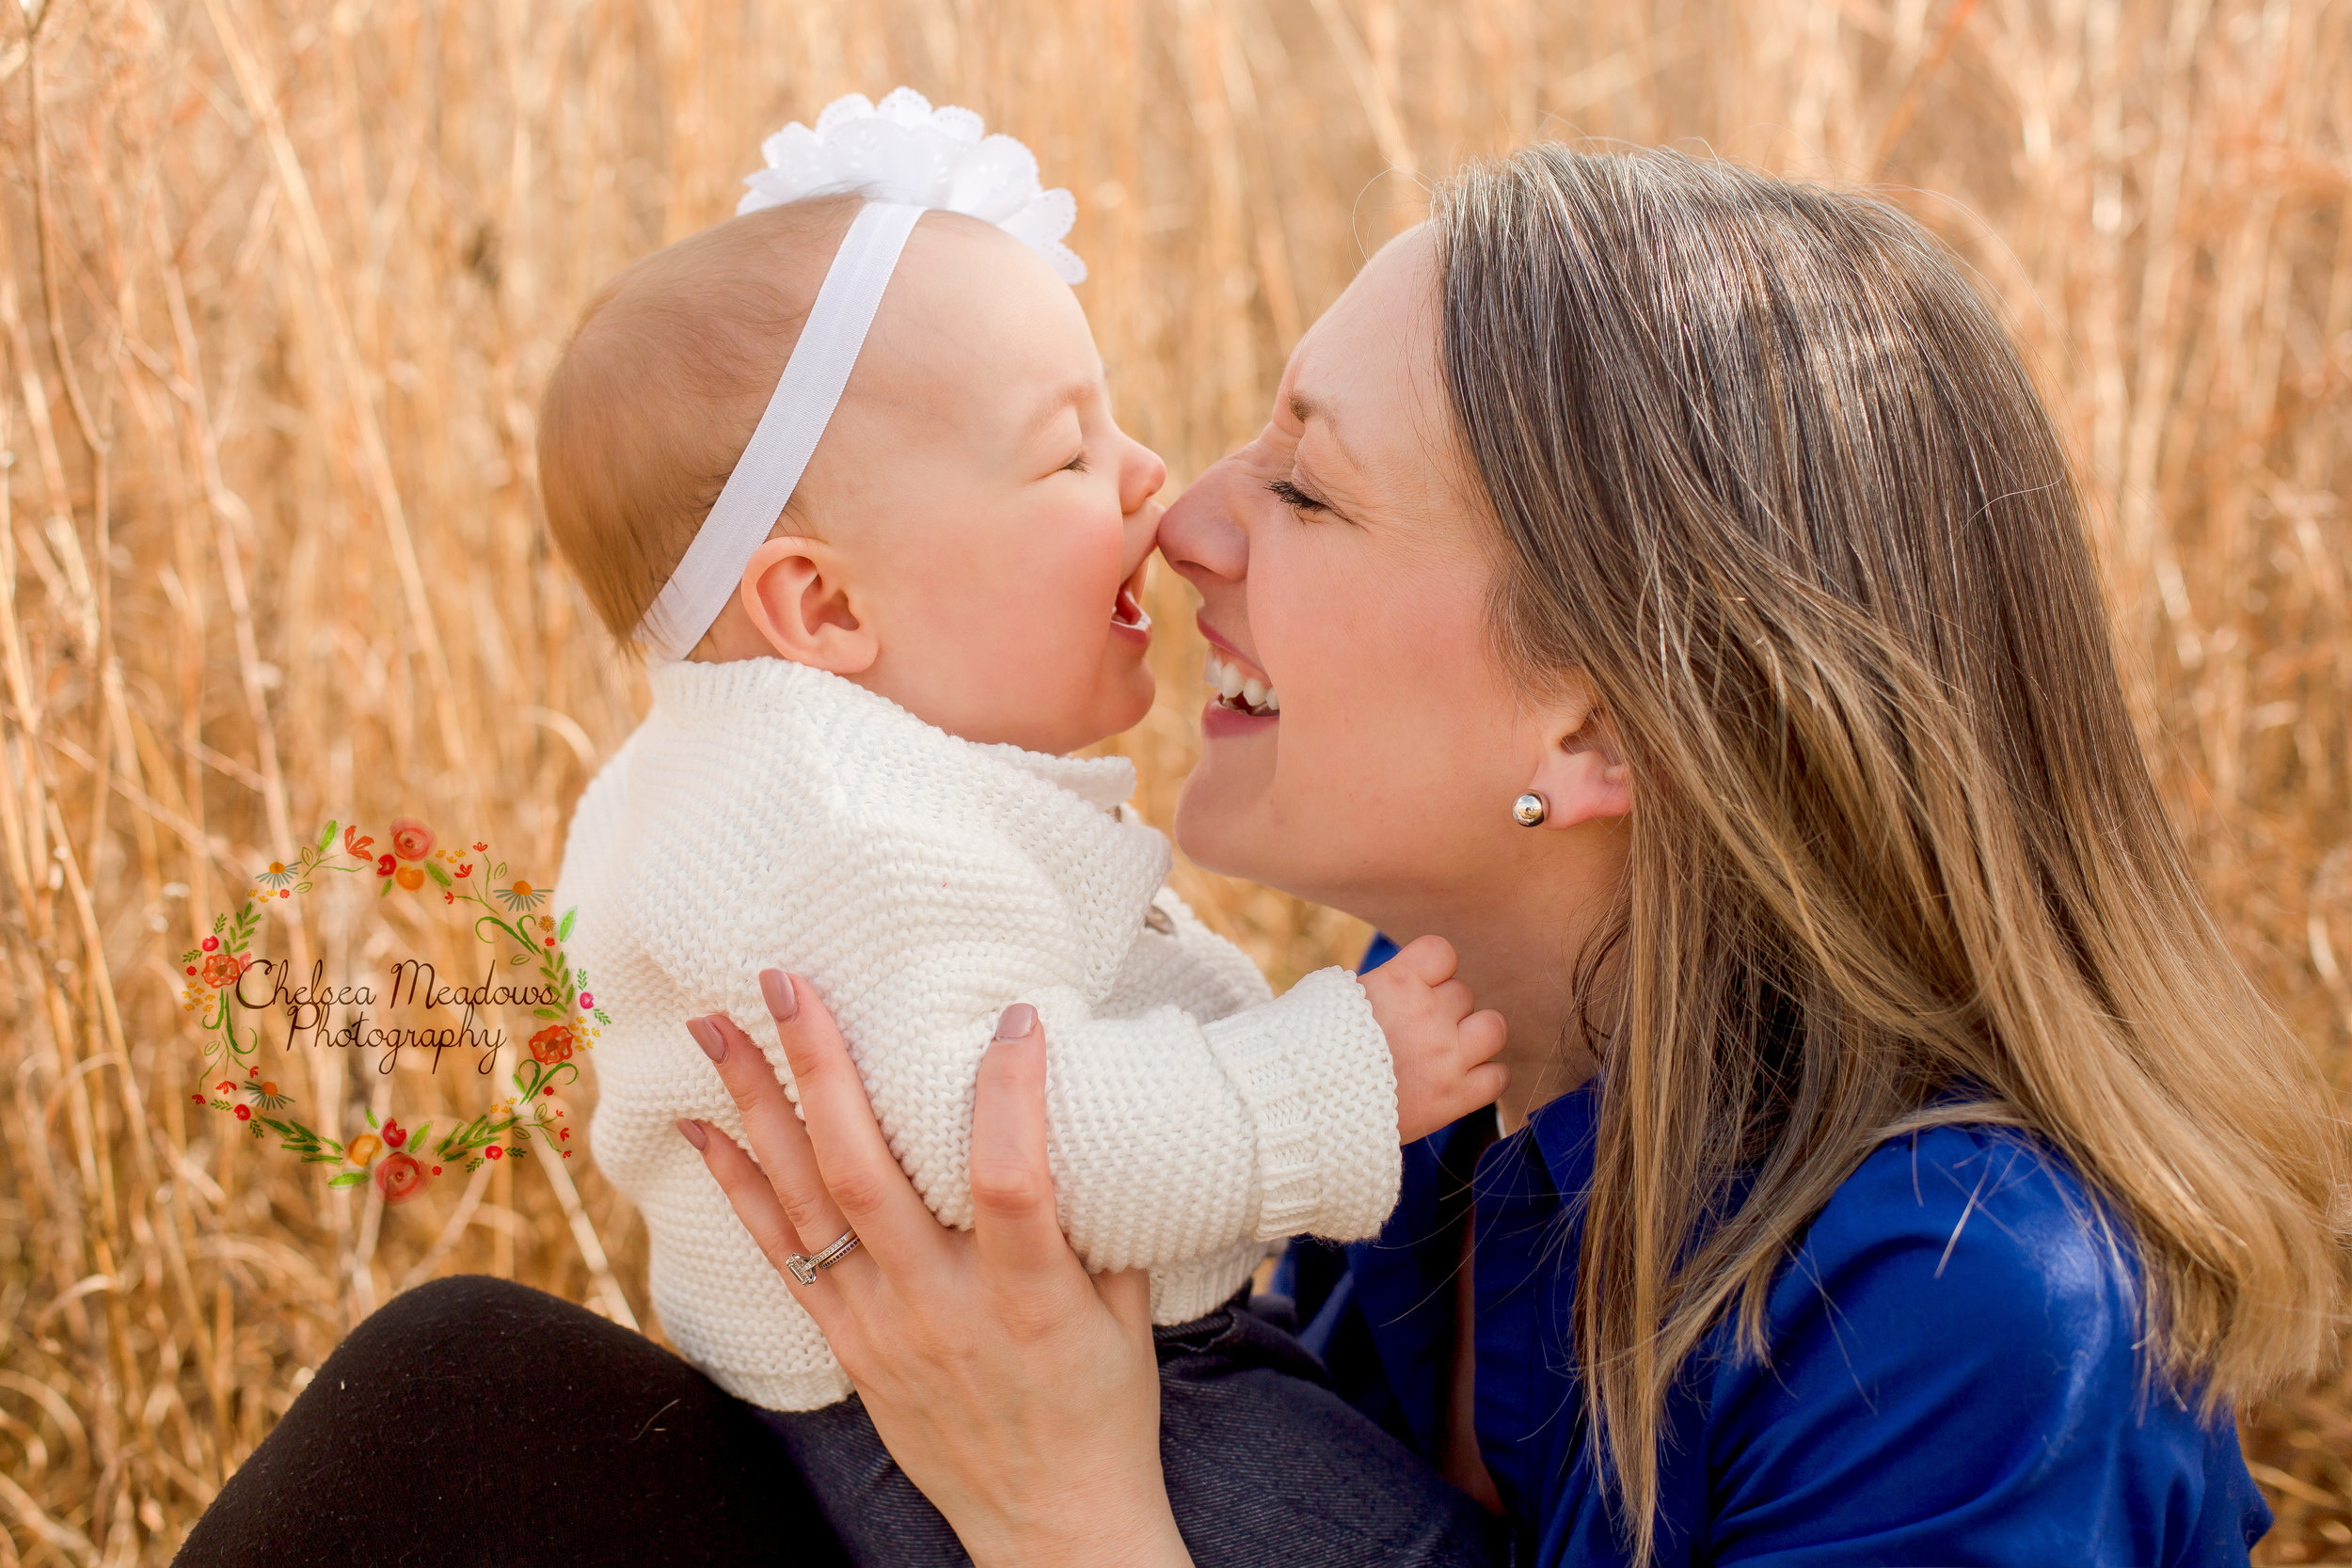 Phina 6 Month Session - Nashville Family Photographer - Chelsea Meadows Photography (17).jpg